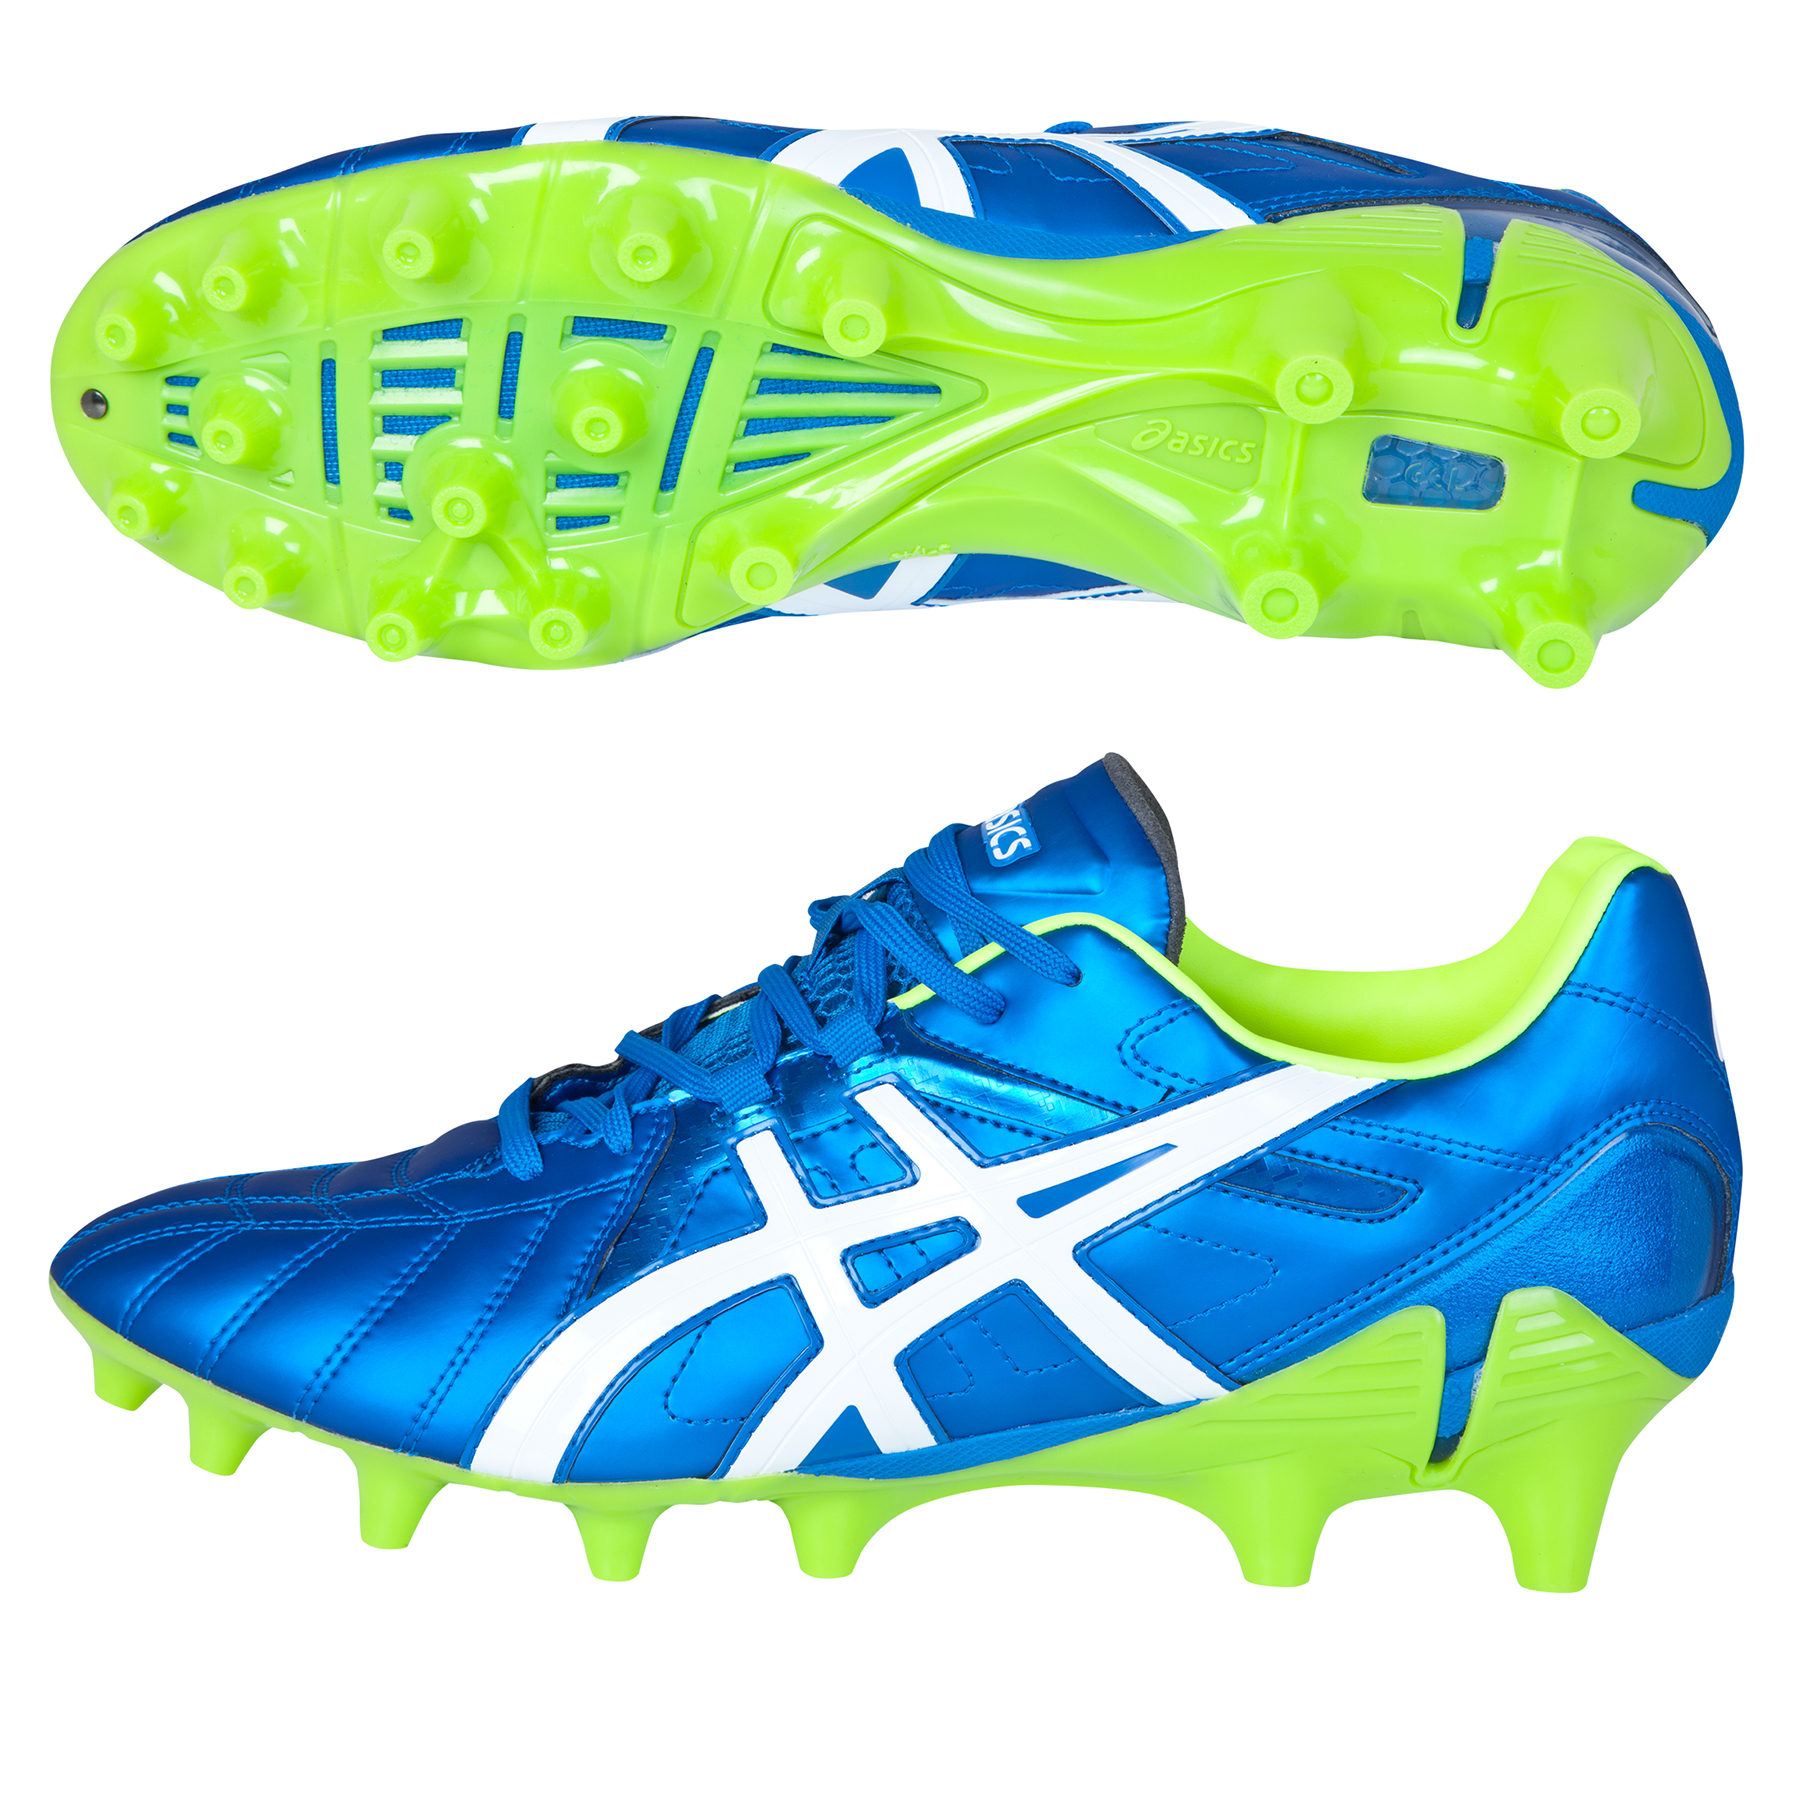 Asics Gel-Lethal Tigreor 8 SK Rugby Boot